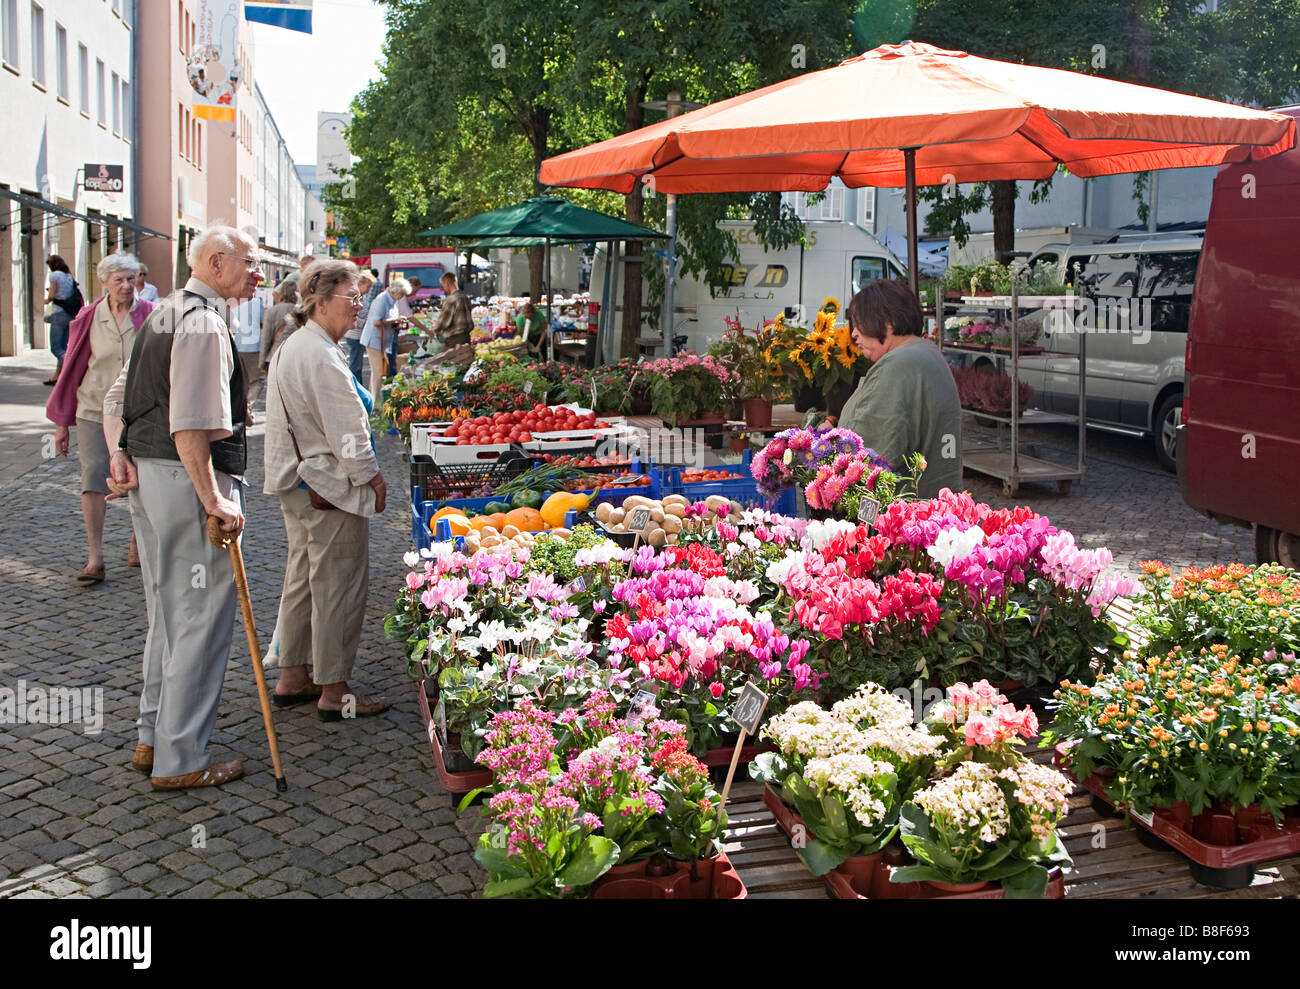 Market stall in street selling local produce Neubrandenburg Germany - Stock Image